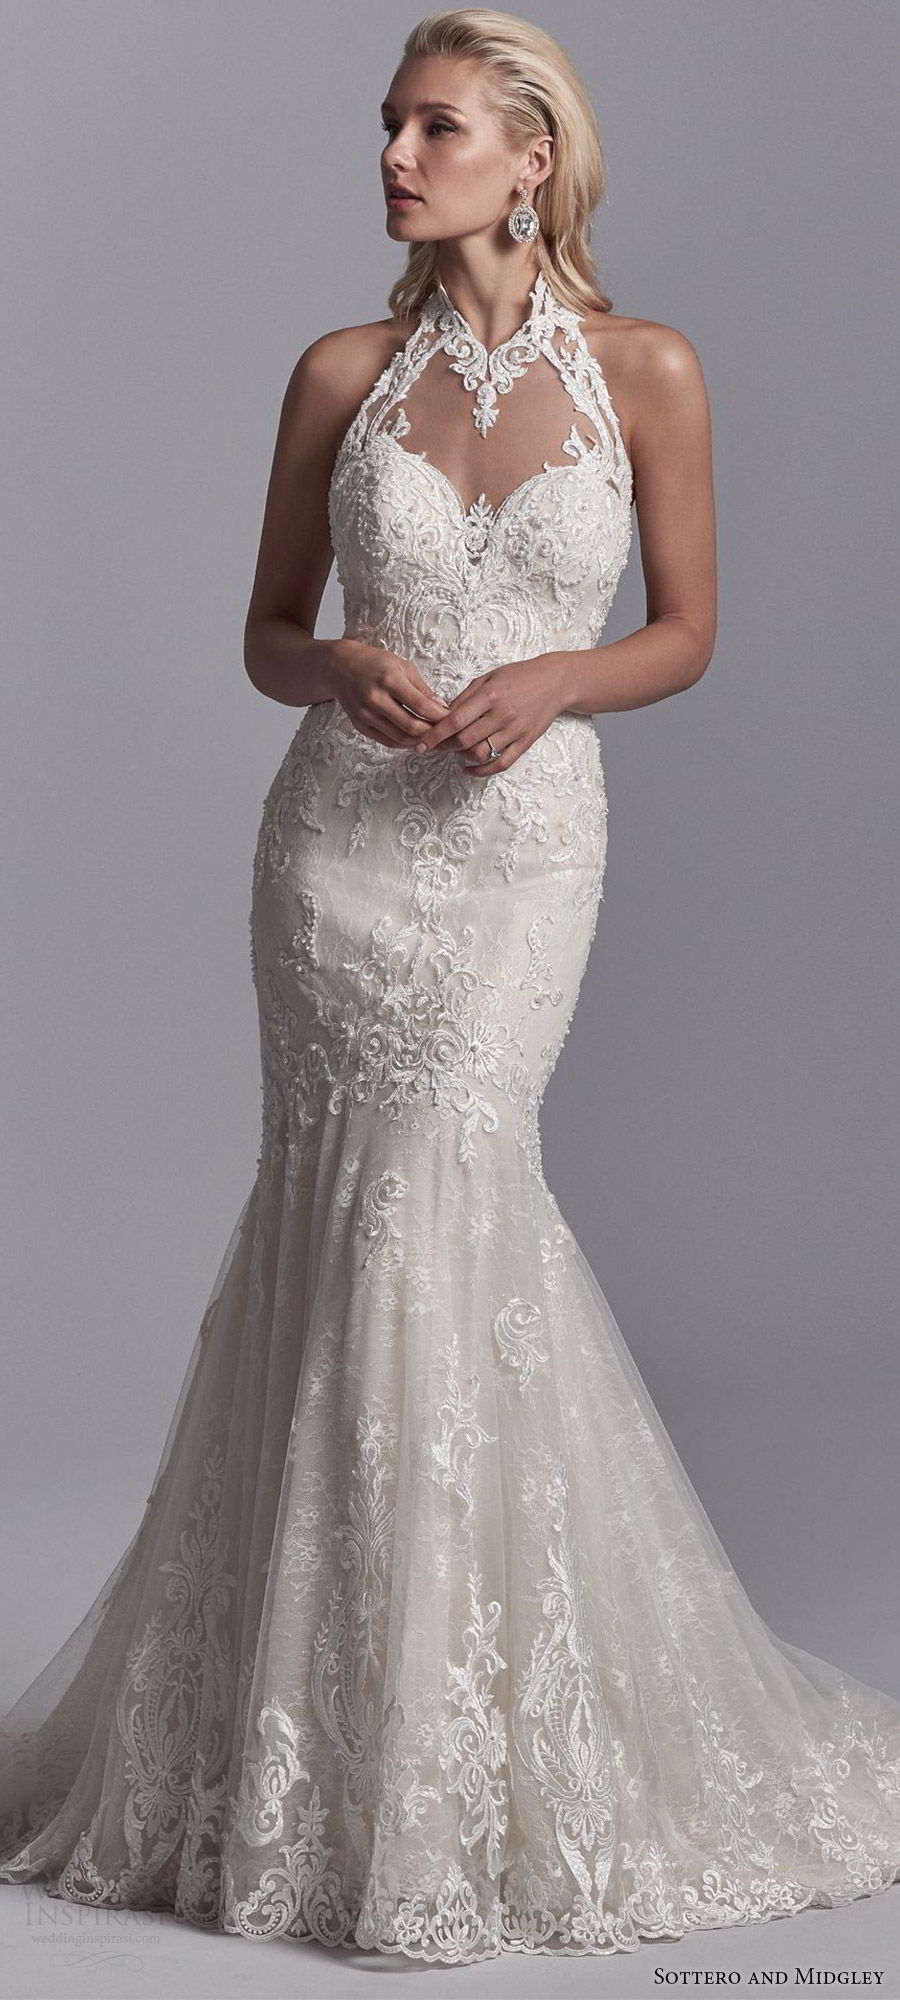 2018 Wedding Dress Trends To Love Part 1 Crazyforus